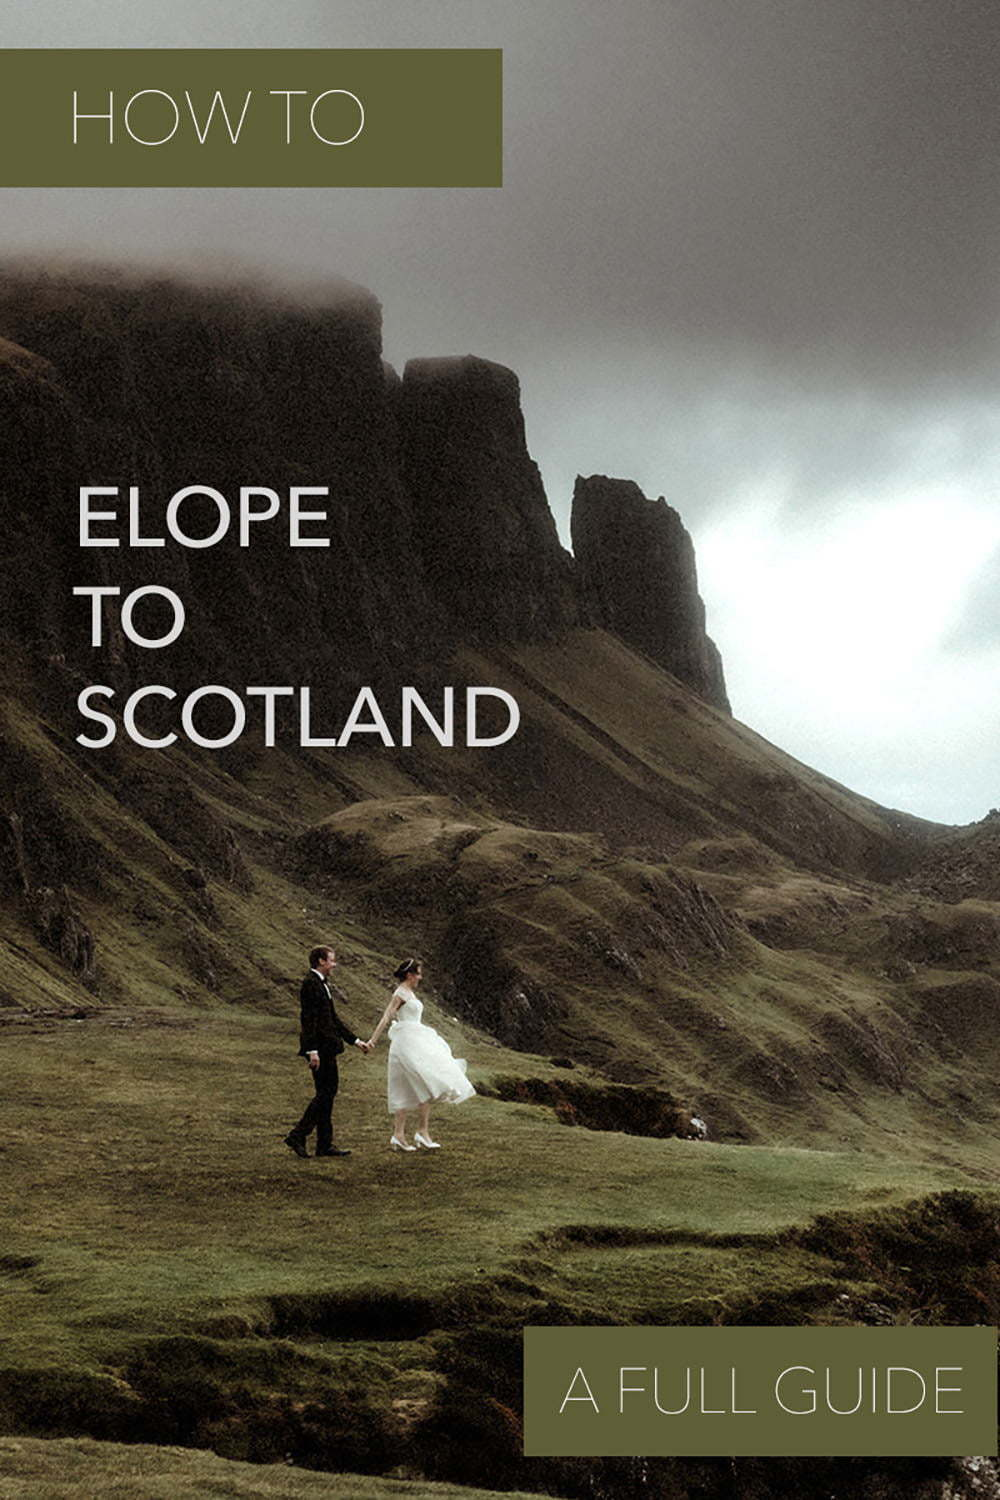 scottish elopement planning guide